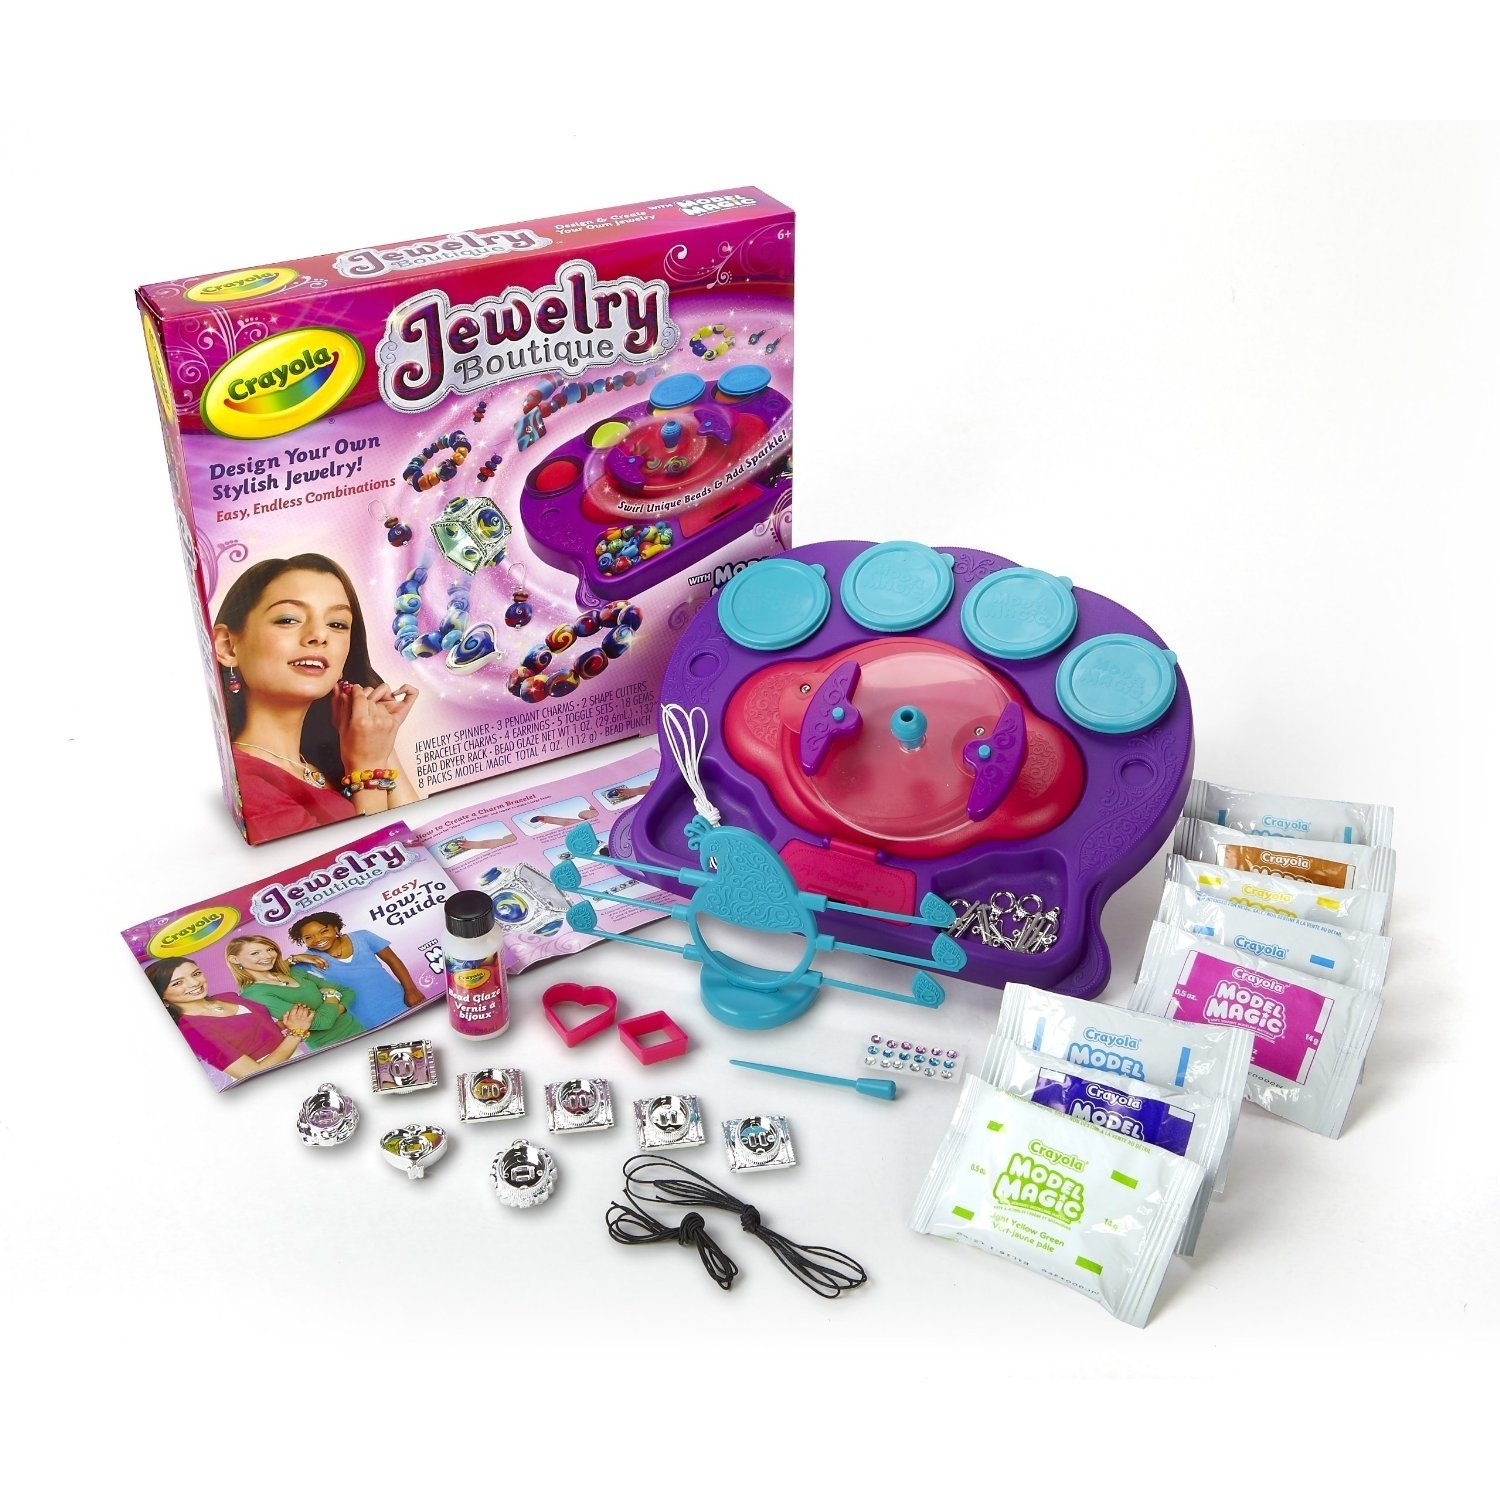 10 Fabulous Birthday Gift Ideas For 8 Yr Old Girl themes birthday 6 year old boy birthday gift ideas together with 6 2021